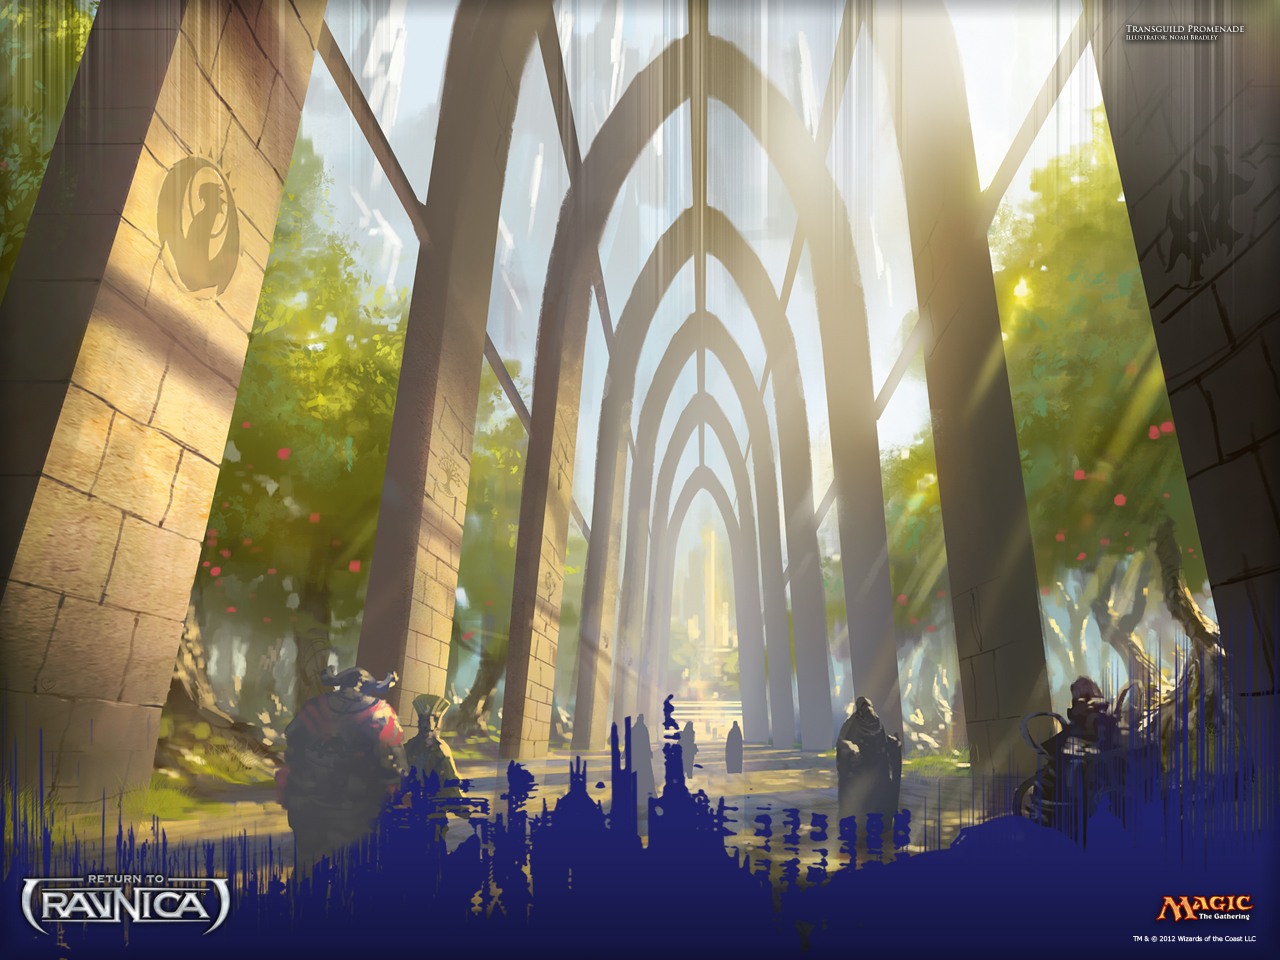 Hd Supreme Wallpaper Iphone X Mtg Realm Return To Ravnica Wallpapers